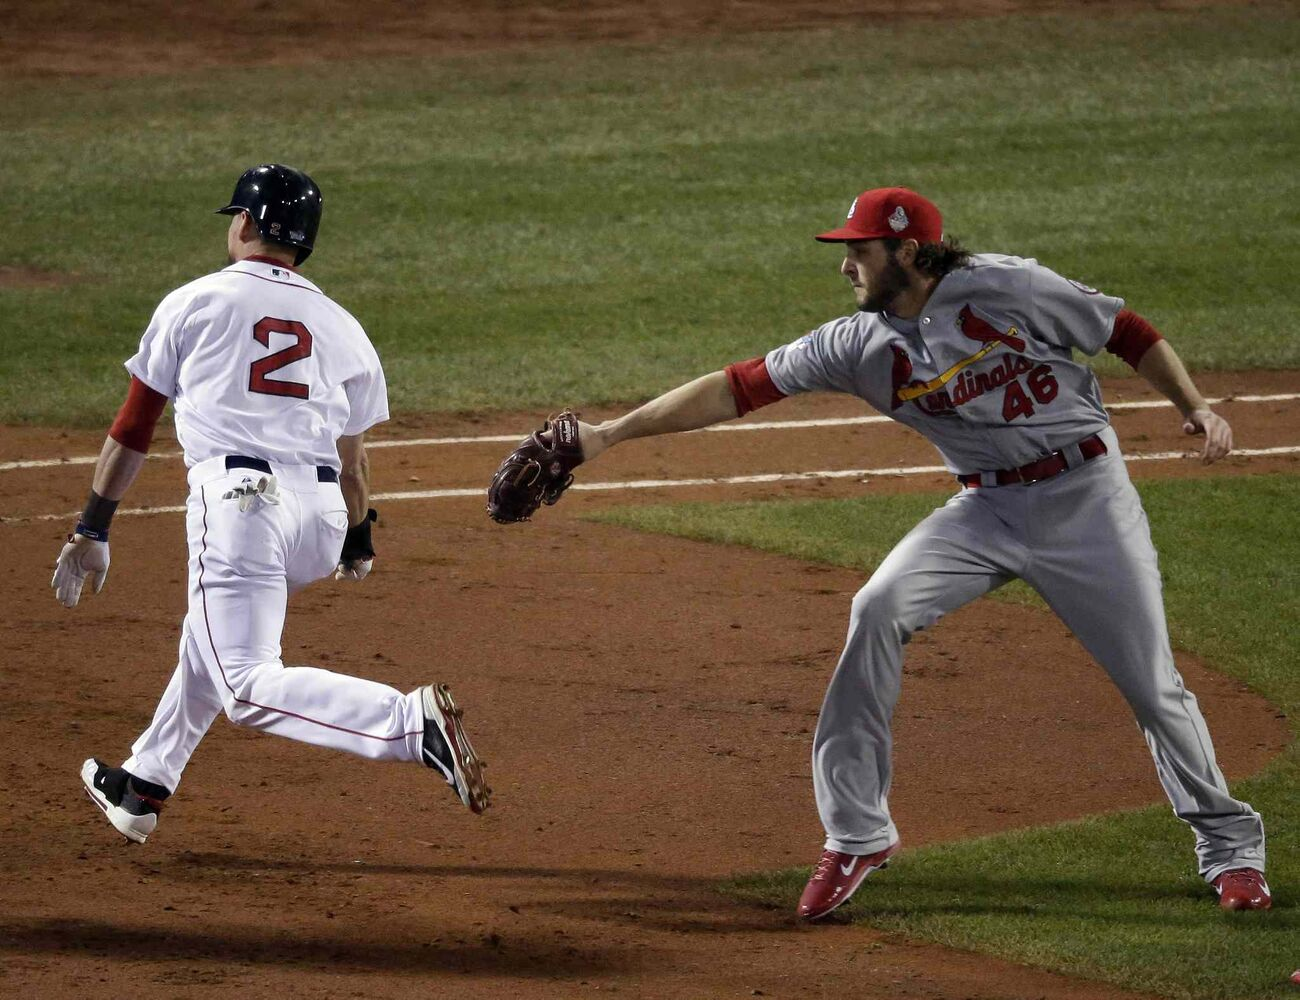 Boston Red Sox's Jacoby Ellsbury gets past St. Louis Cardinals relief pitcher Kevin Siegrist as he makes it safely back to first base on a rundown during the fifth inning. (Charlie Riedel / The Associated Press)